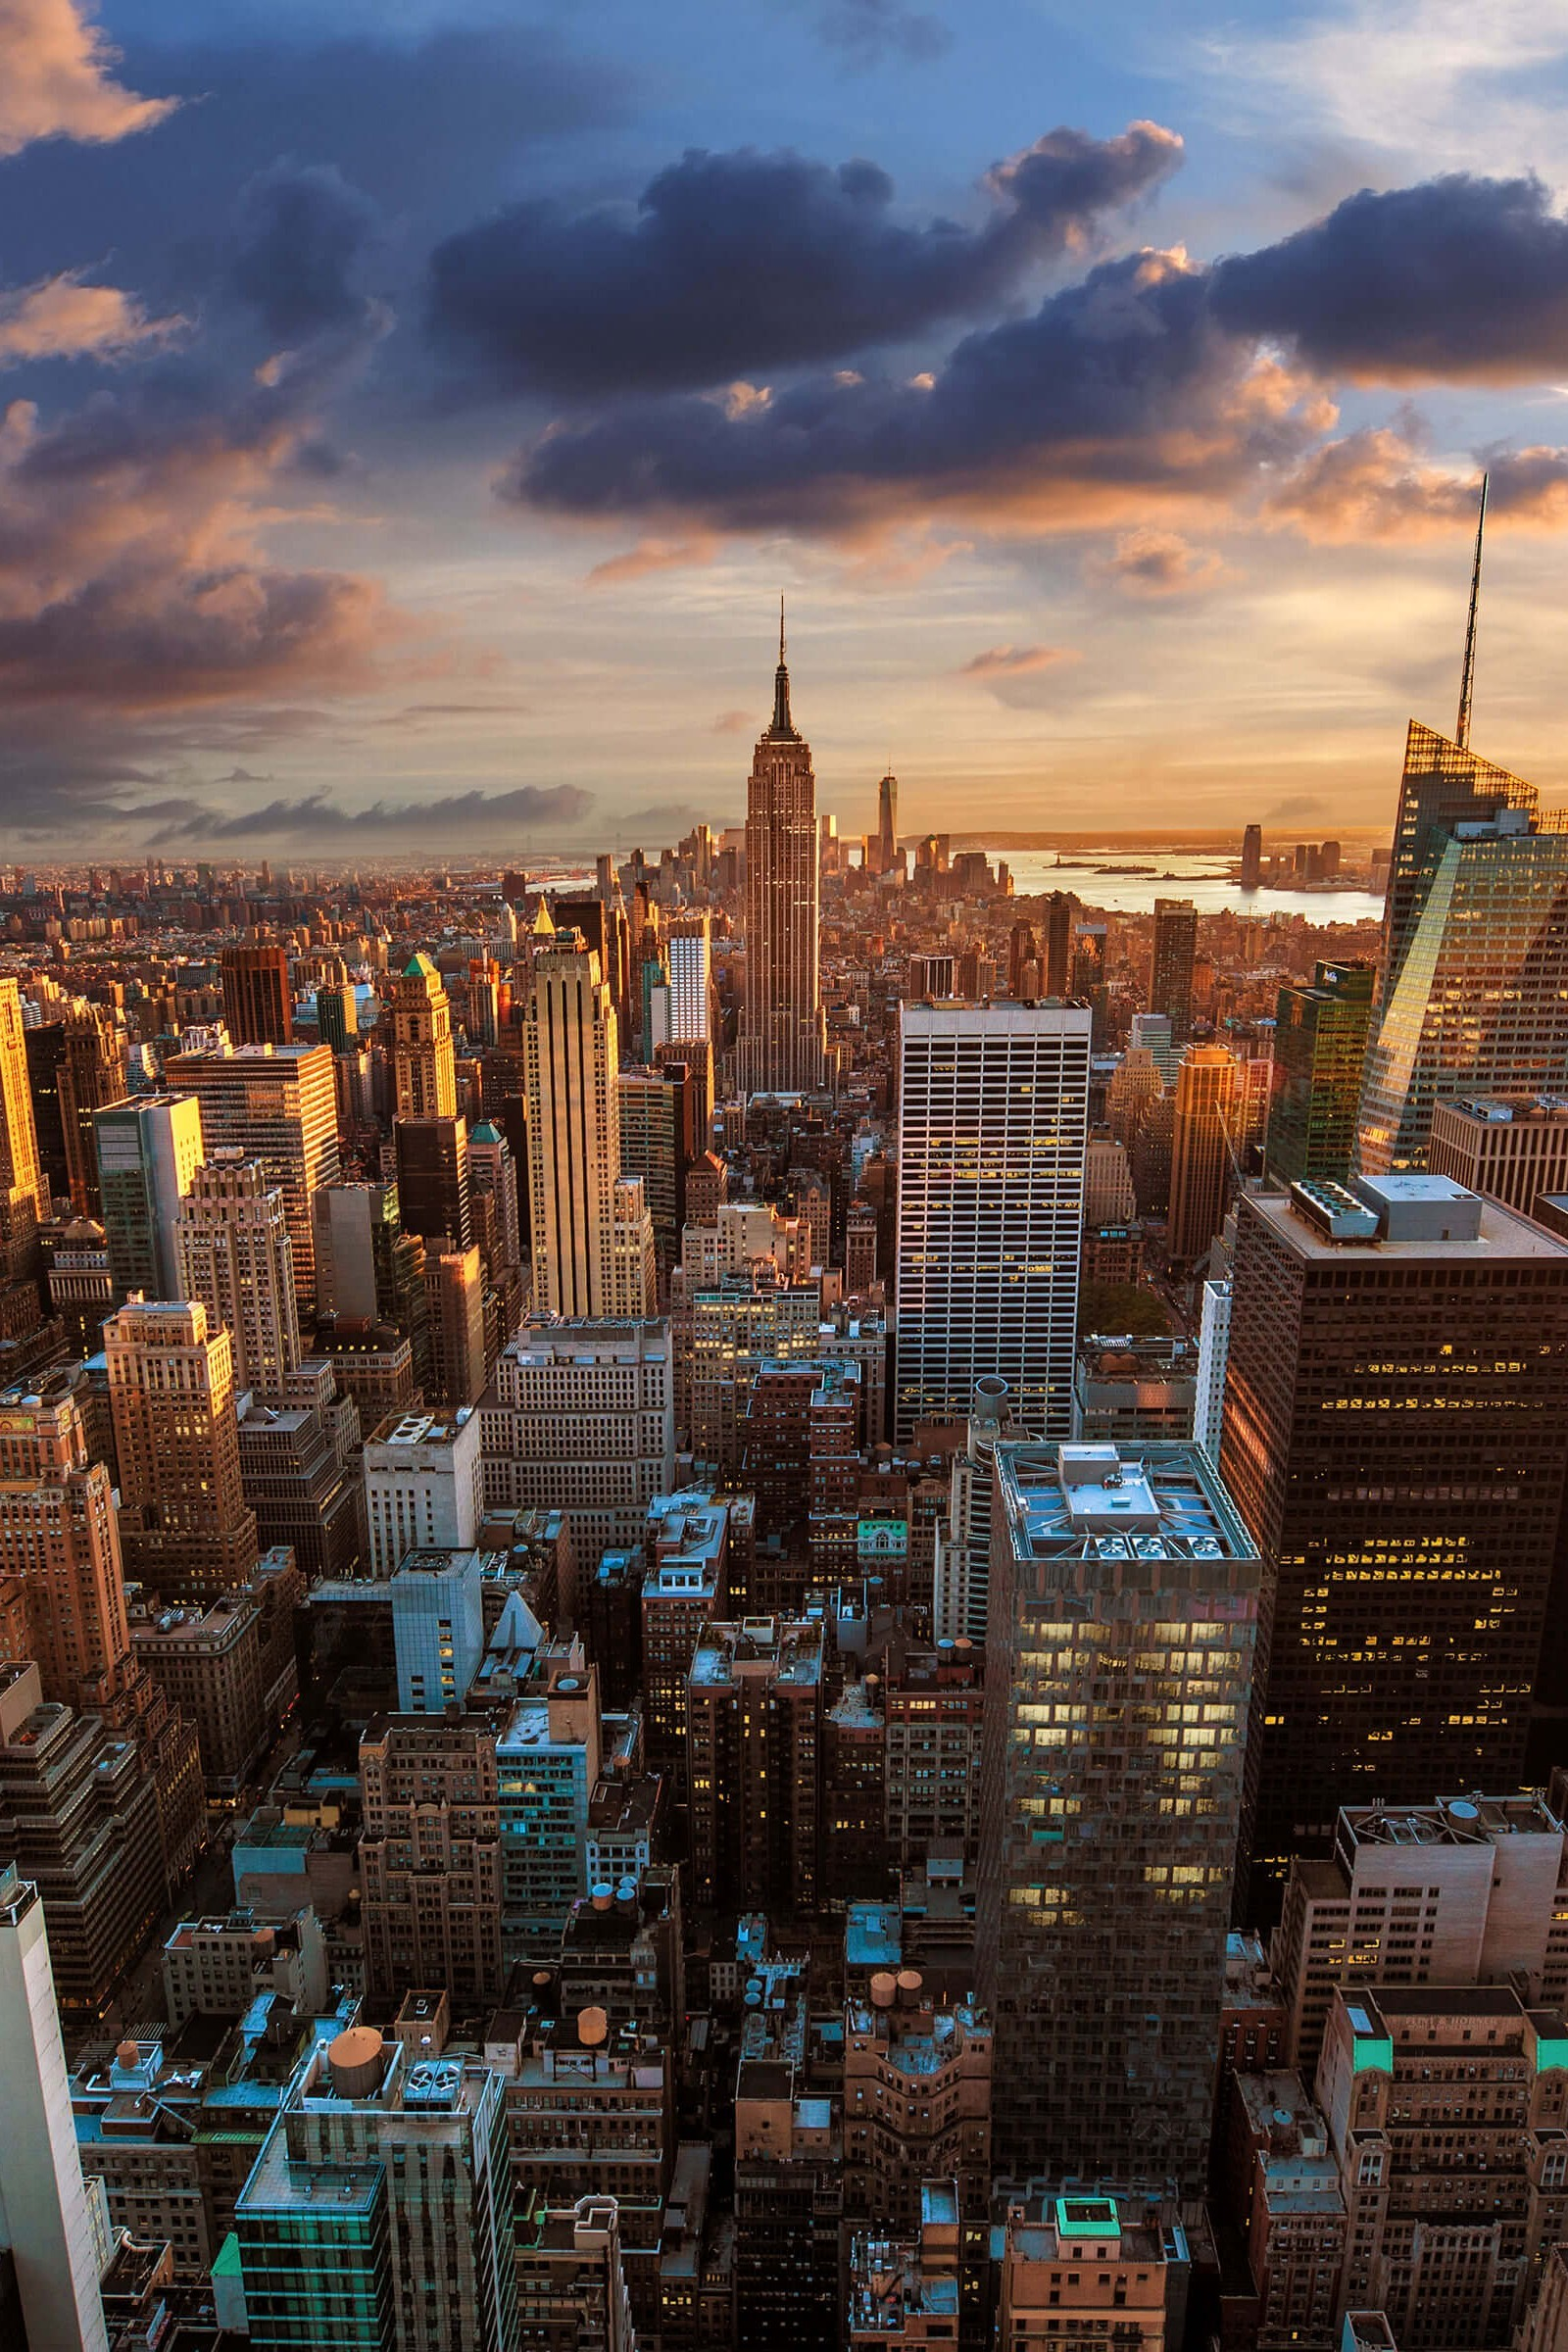 New York City Skyline At Sunset Wallpaper for Amazon Kindle Fire HDX 8 .